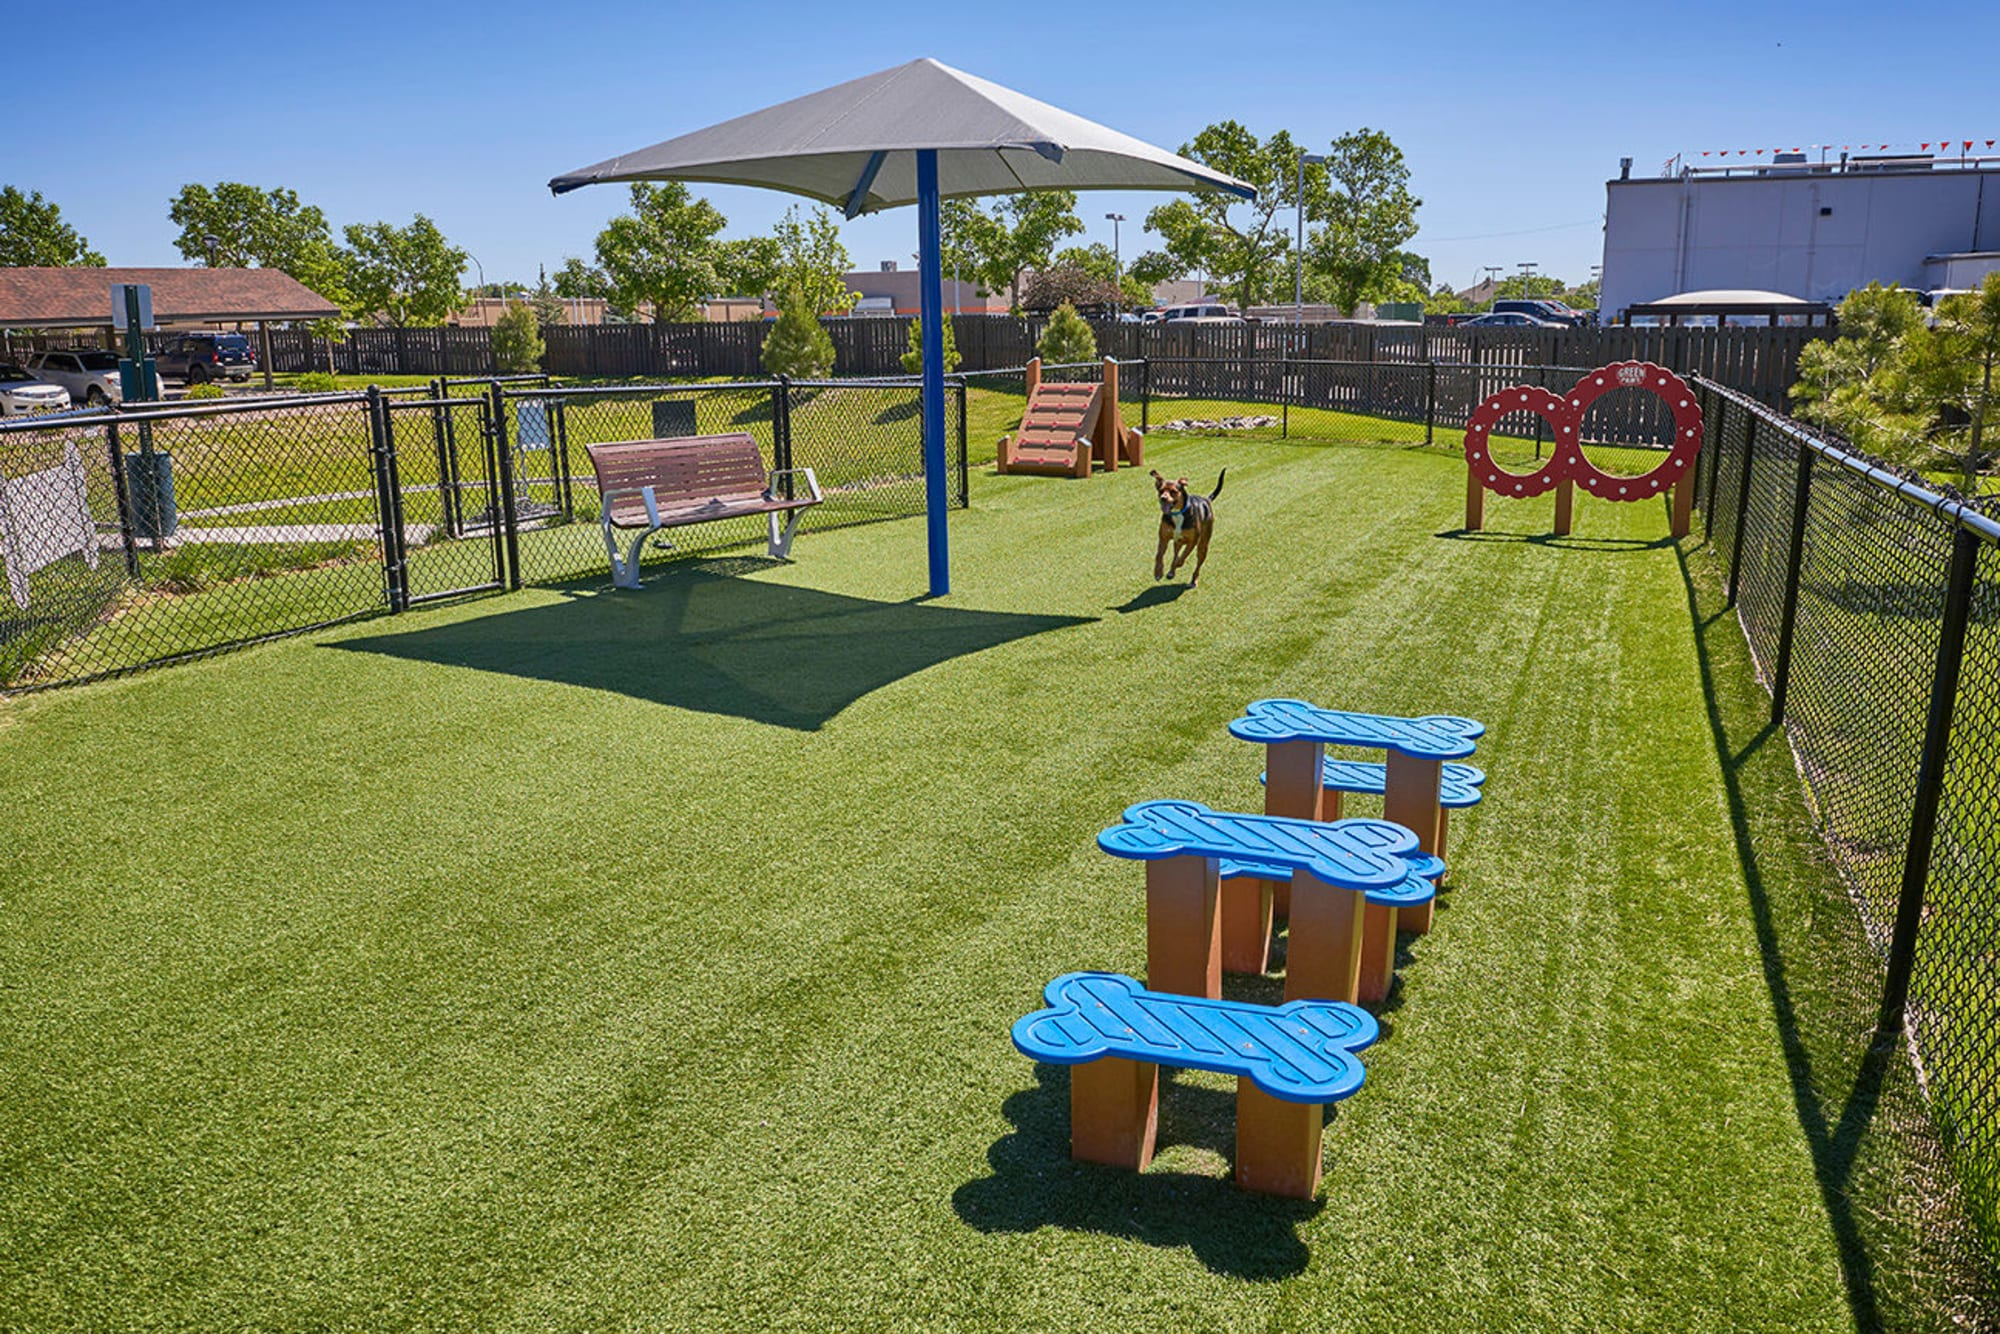 The groomed grass at the dog park at M2 Apartments in Denver, Colorado